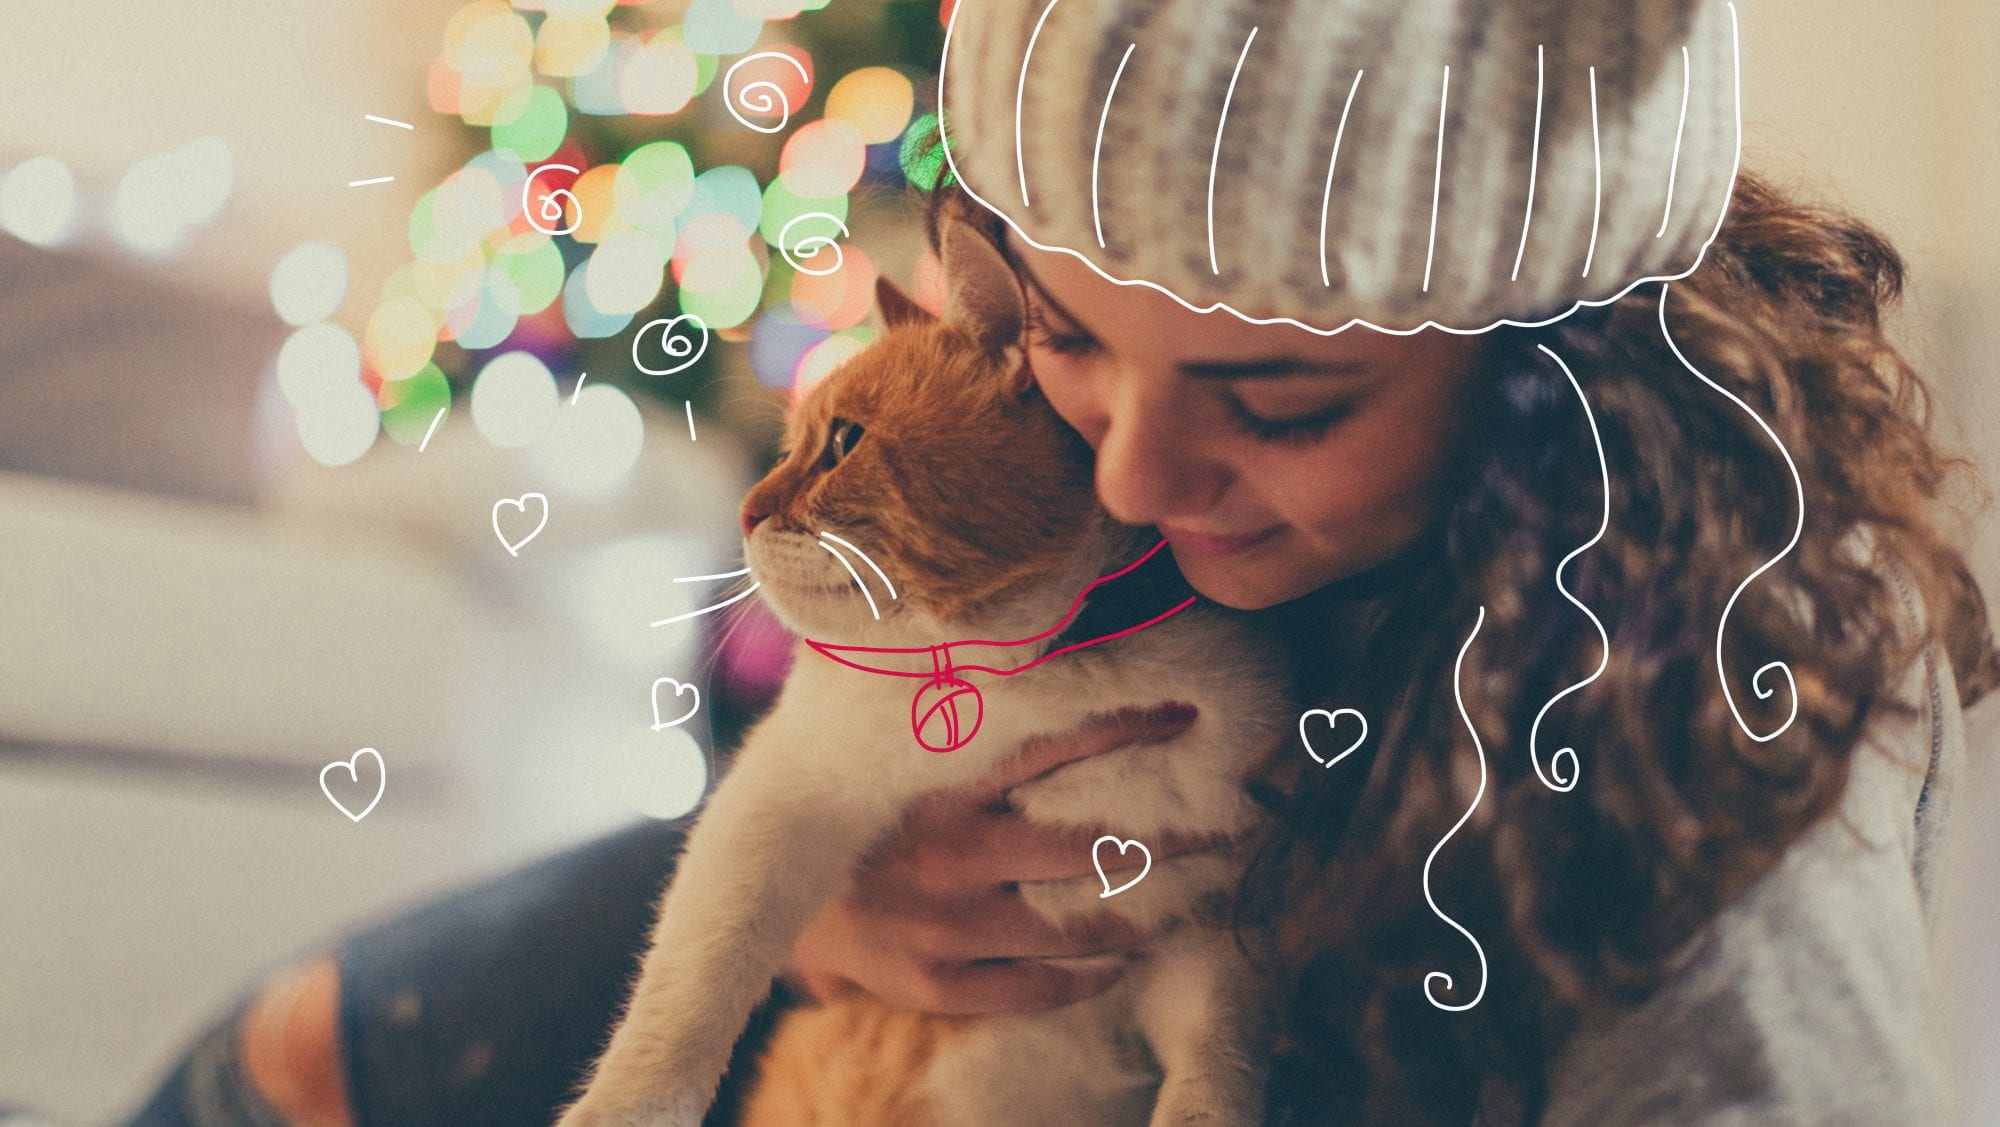 Cat insurance - Cat Christmas gifts - Cuddling with her cat